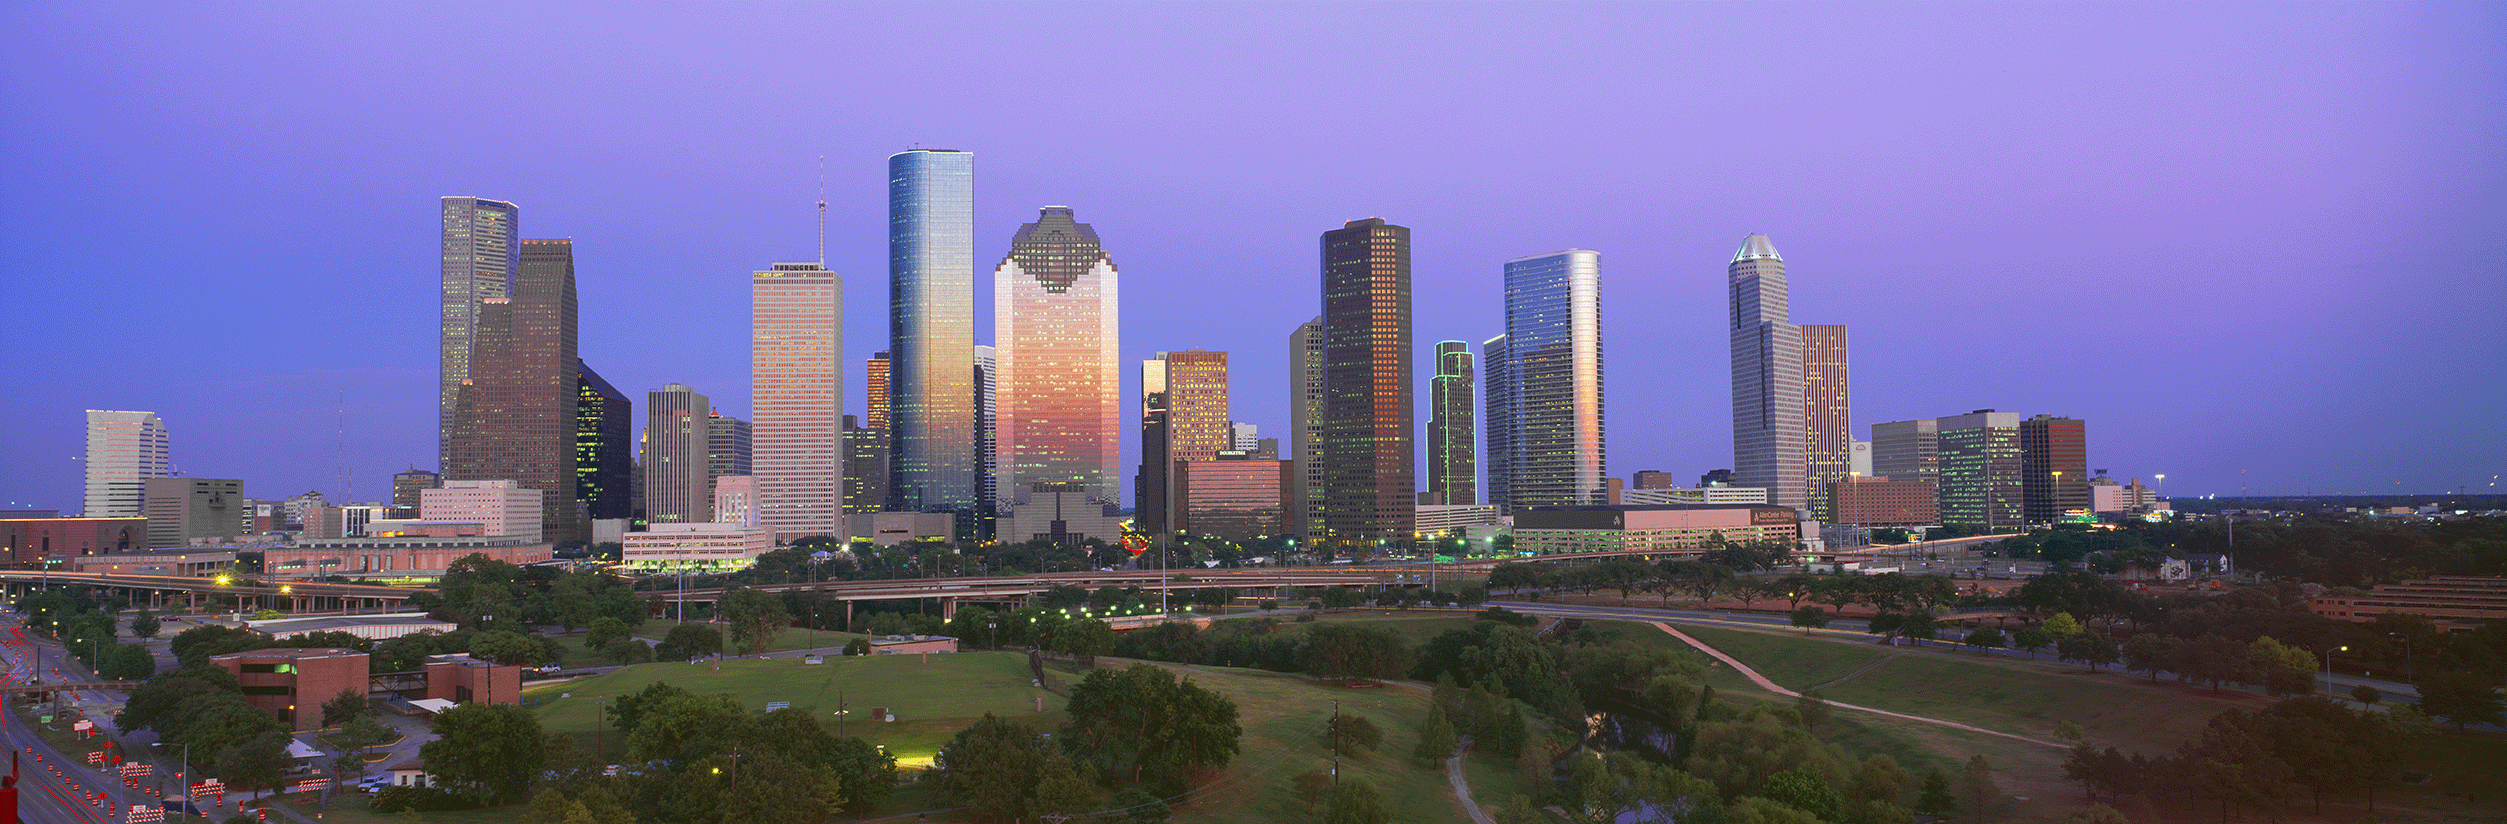 Houston, TX skyline from a distance.